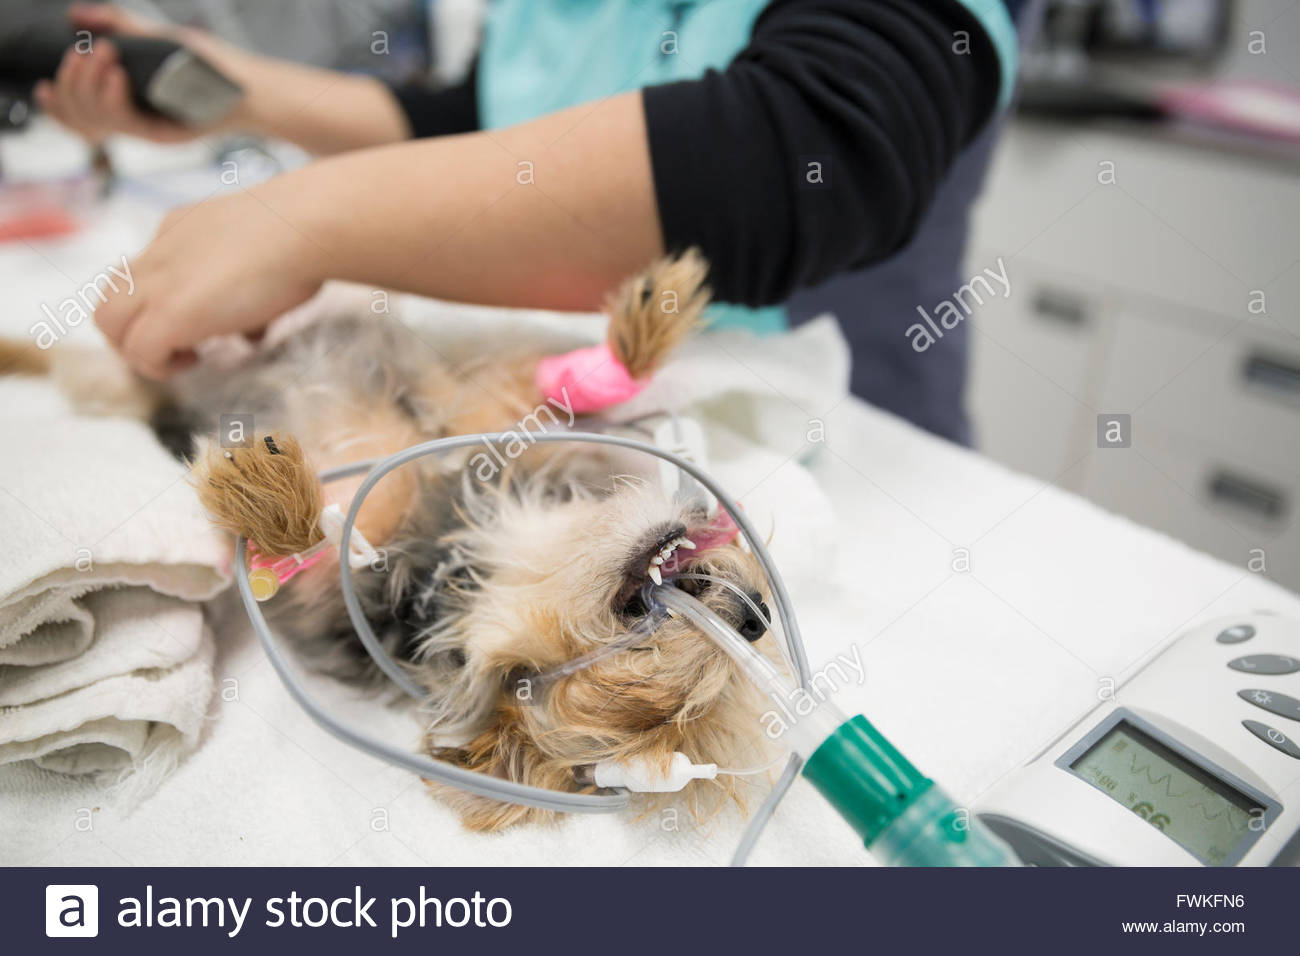 Sedated dog undergoing surgery in veterinarian clinic - Stock Image